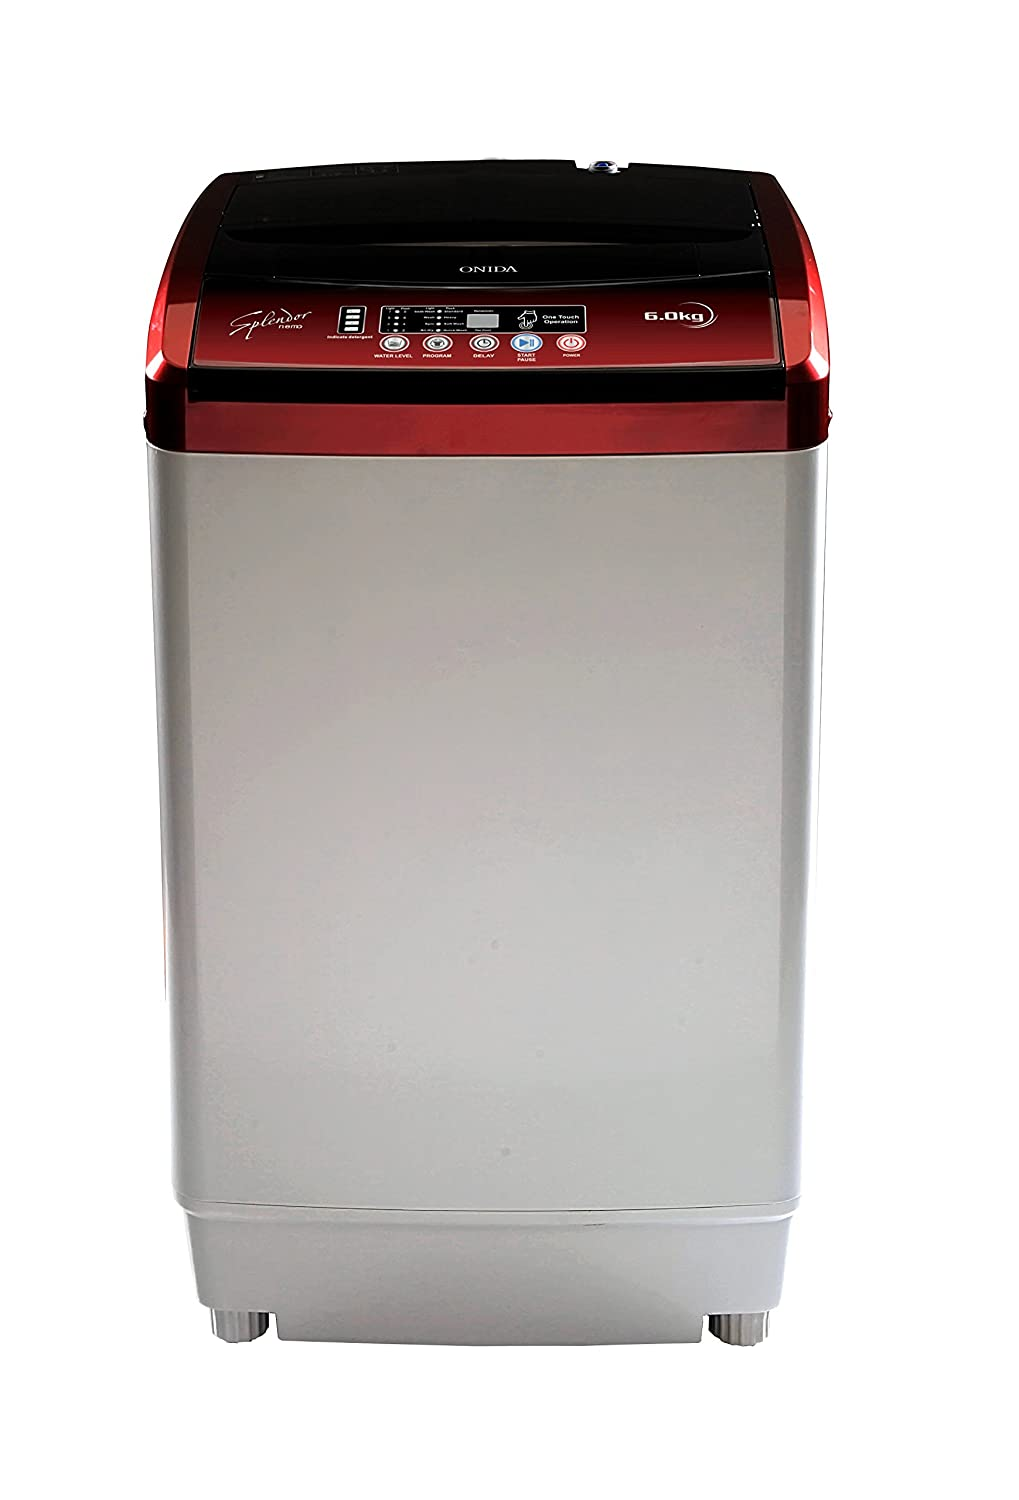 Onida WO60TSPLNEMO Fully-automatic Top-loading Washing Machine (6 Kg, Lava Red) By Amazon @ Rs.9,990